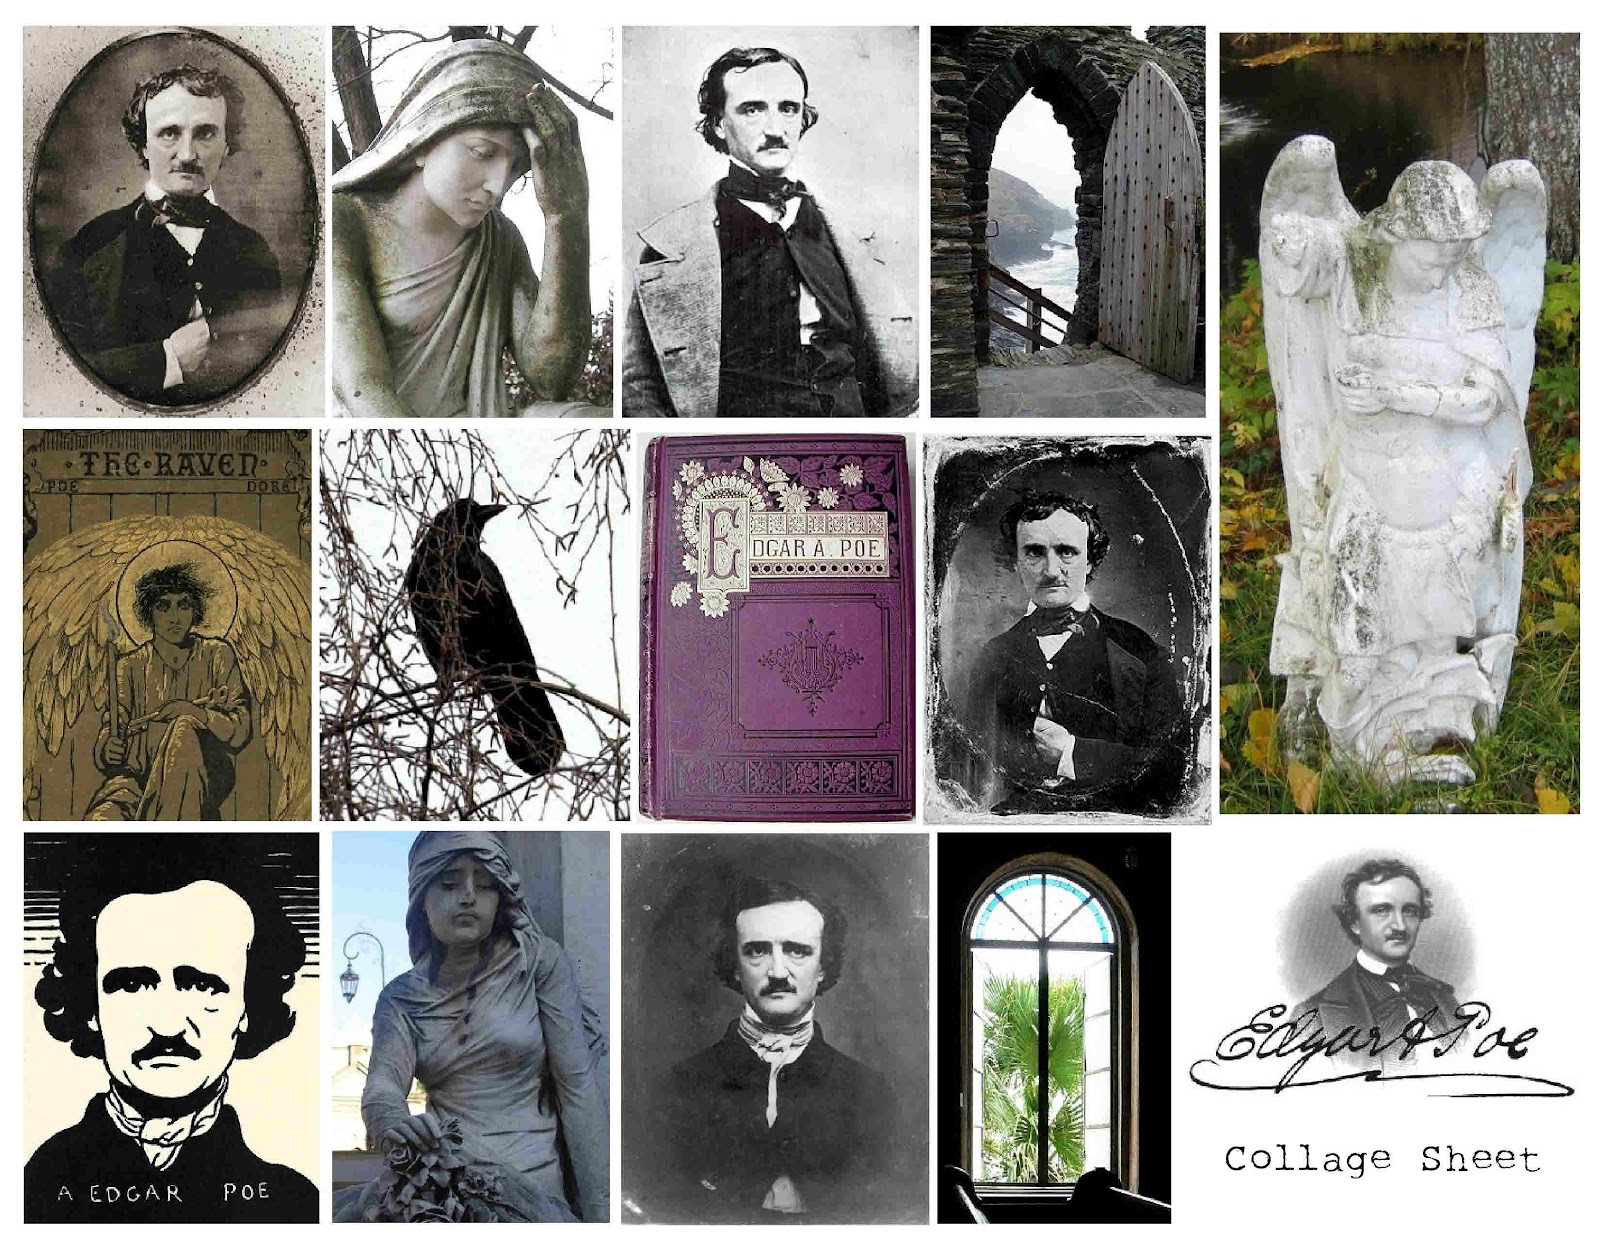 an analysis of the writings of edgar allan poe by dave Browse through rita dove's poems and quotes 31 poems of rita dove phenomenal woman, still i rise, the road not taken, if you forget me edgar allan poe.